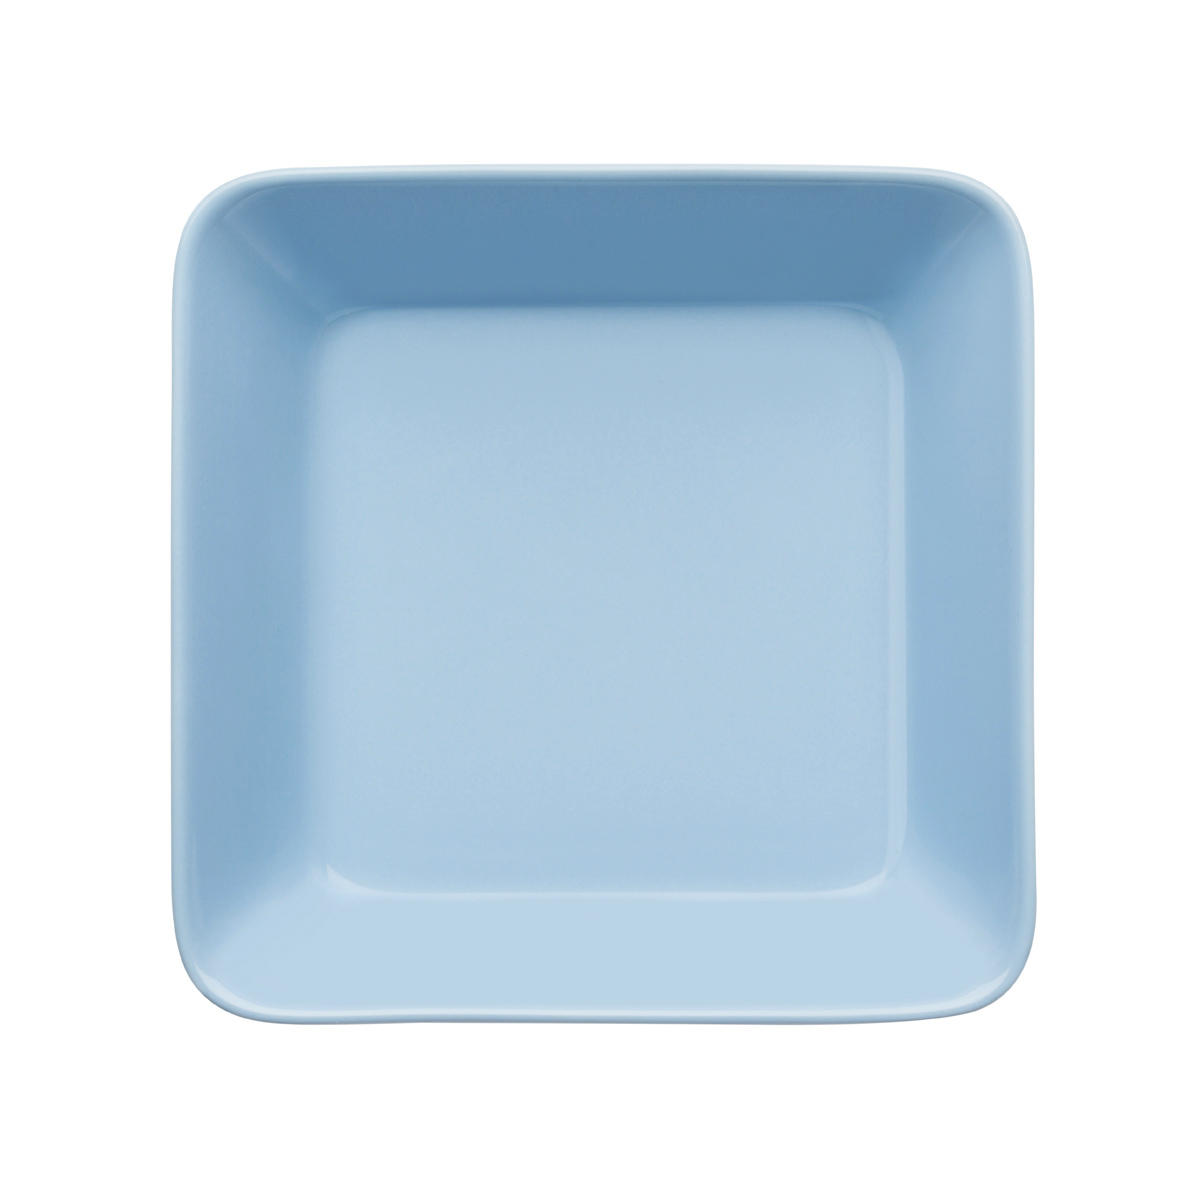 iittala teema light blue vegetable dish iittala teema light blue dinnerware. Black Bedroom Furniture Sets. Home Design Ideas